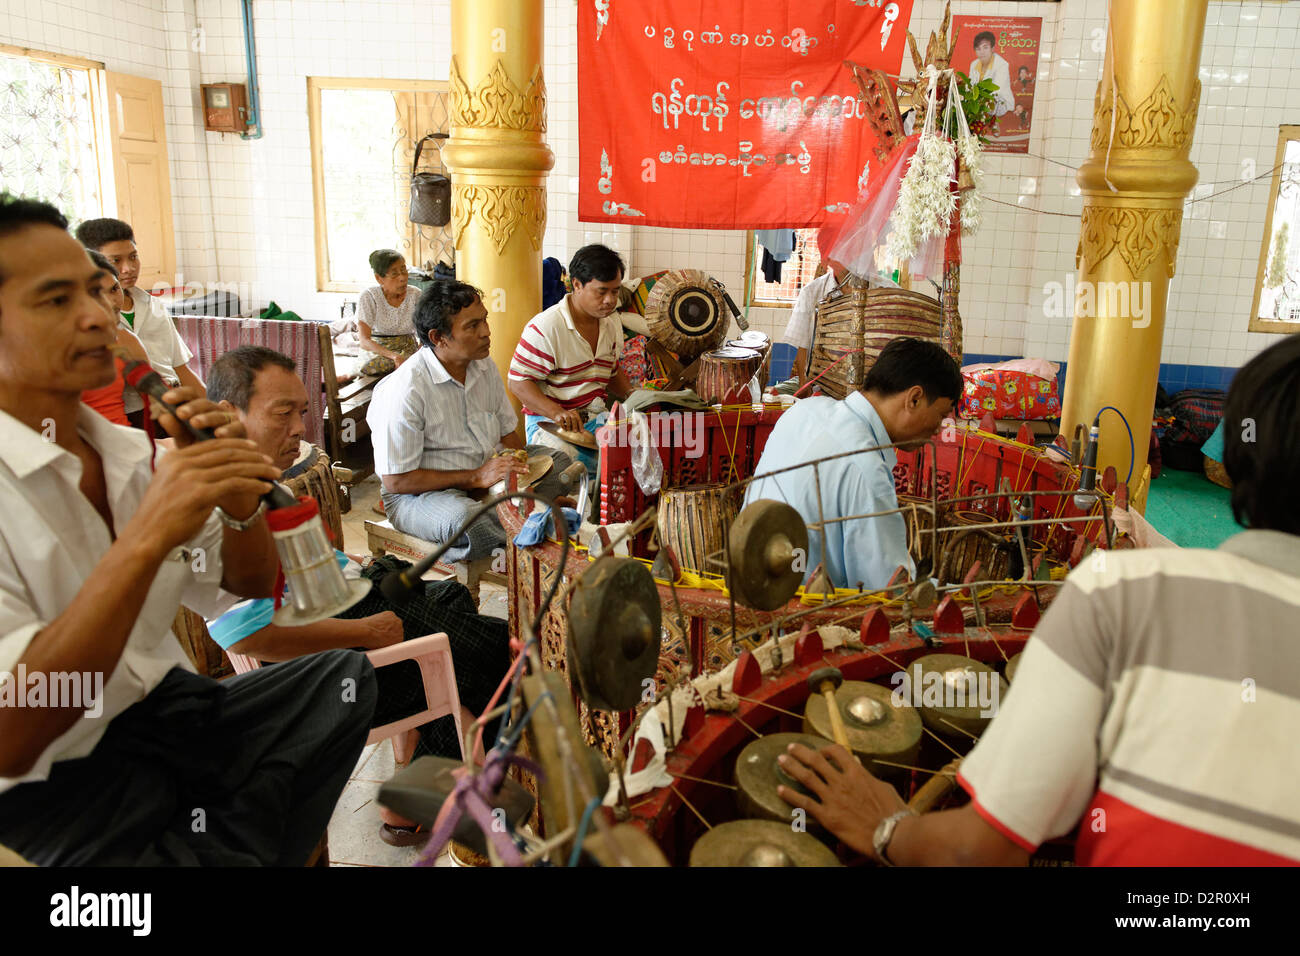 The hsaing waing, a traditional Burmese folk musical ensemble, Pyin U Lwin (Maymyo), Mandalay Division, Myanmar - Stock Image